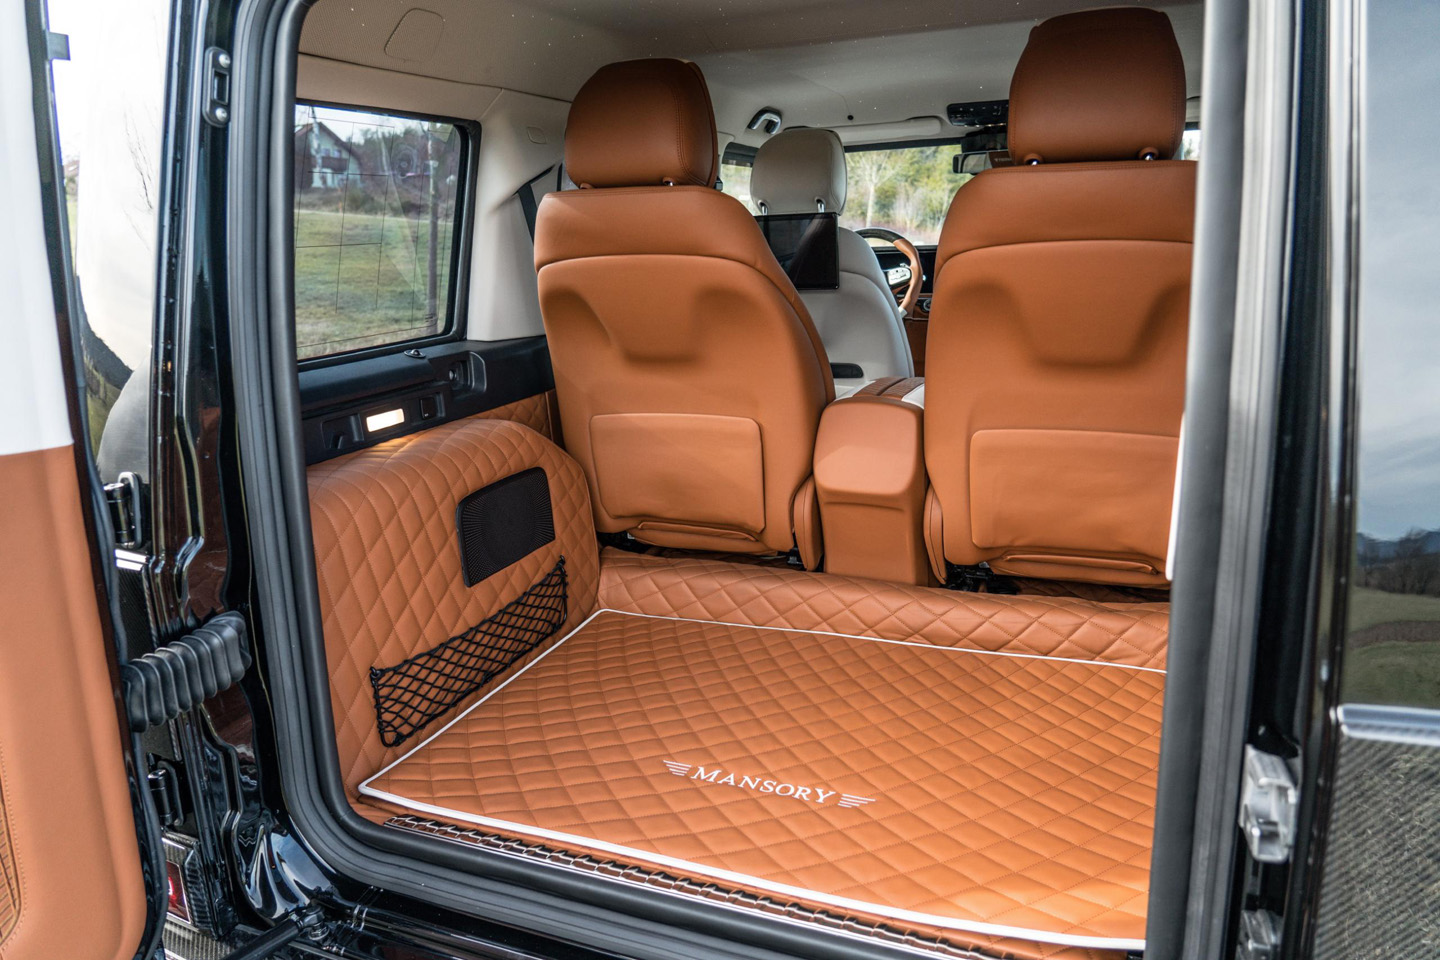 Mansory Mercedes Benz G 63 AMG Armored 2020 11